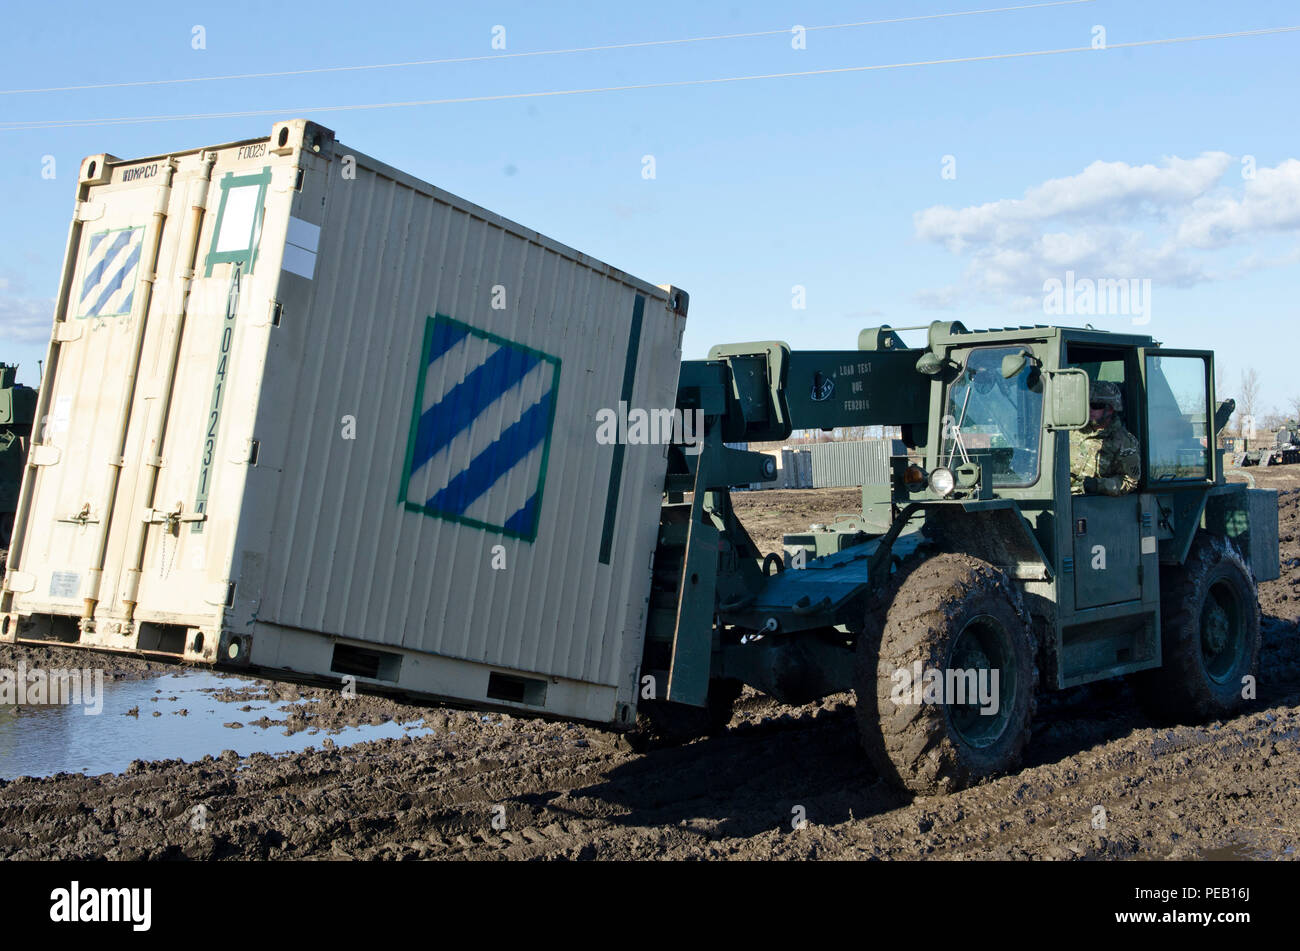 Sgt. Will Davis, a wheeled vehicle mechanic attached to 5th Squadron, 7th Cavalry Regiment, 3rd Infantry Division, Fort Stewart, Ga., originally from Rome, Ga., drives a 10K All Terrain Lifter, Army System Forklift during a transporting operation in Smardan, Romania, Dec. 2, 2015. (U.S. Army Photo by Staff Sgt. Steven M. Colvin/Released) - Stock Image